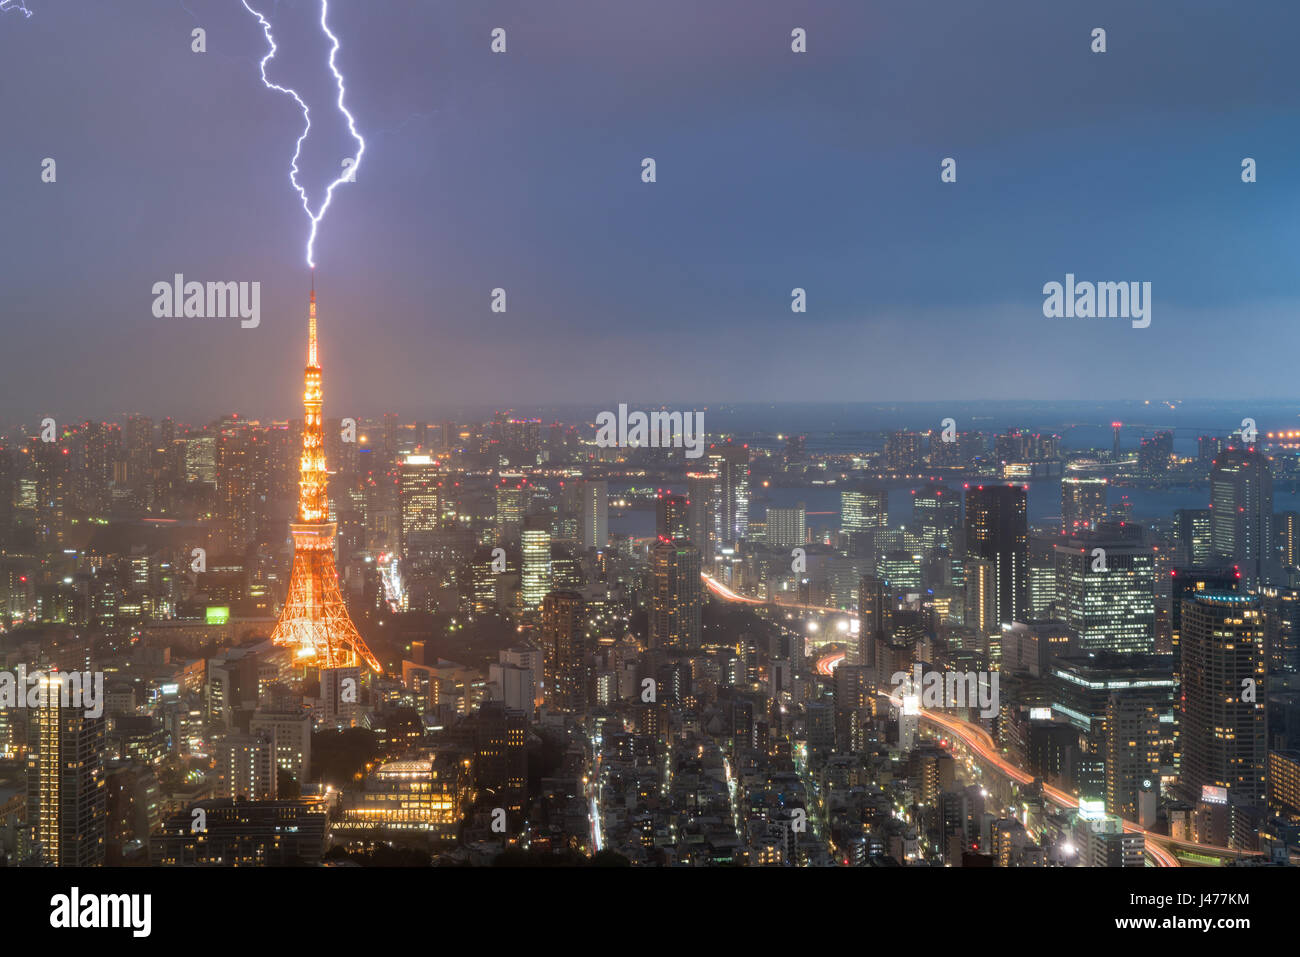 Lightning storm over Tokyo city, Japan in night with thunderbolt over Tokyo tower. Thunderstorm in Tokyo, Japan. - Stock Image